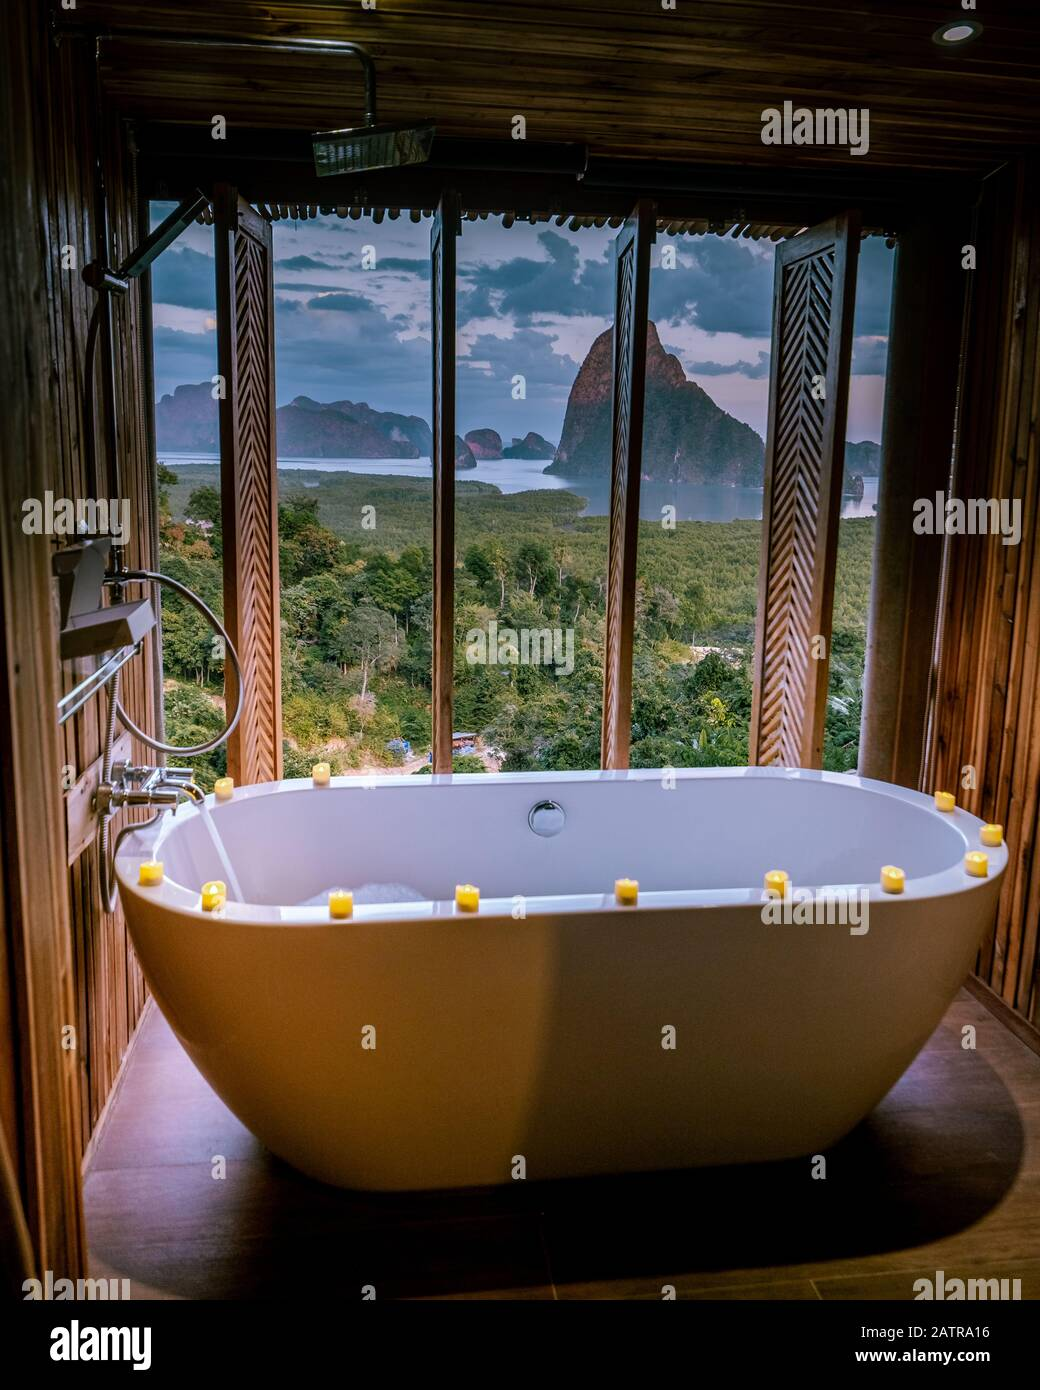 Luxury Bathroom Looking Out Over The Ocean Of Phangnga Bay Thailand Bath Tub In Wooden Room Stock Photo Alamy